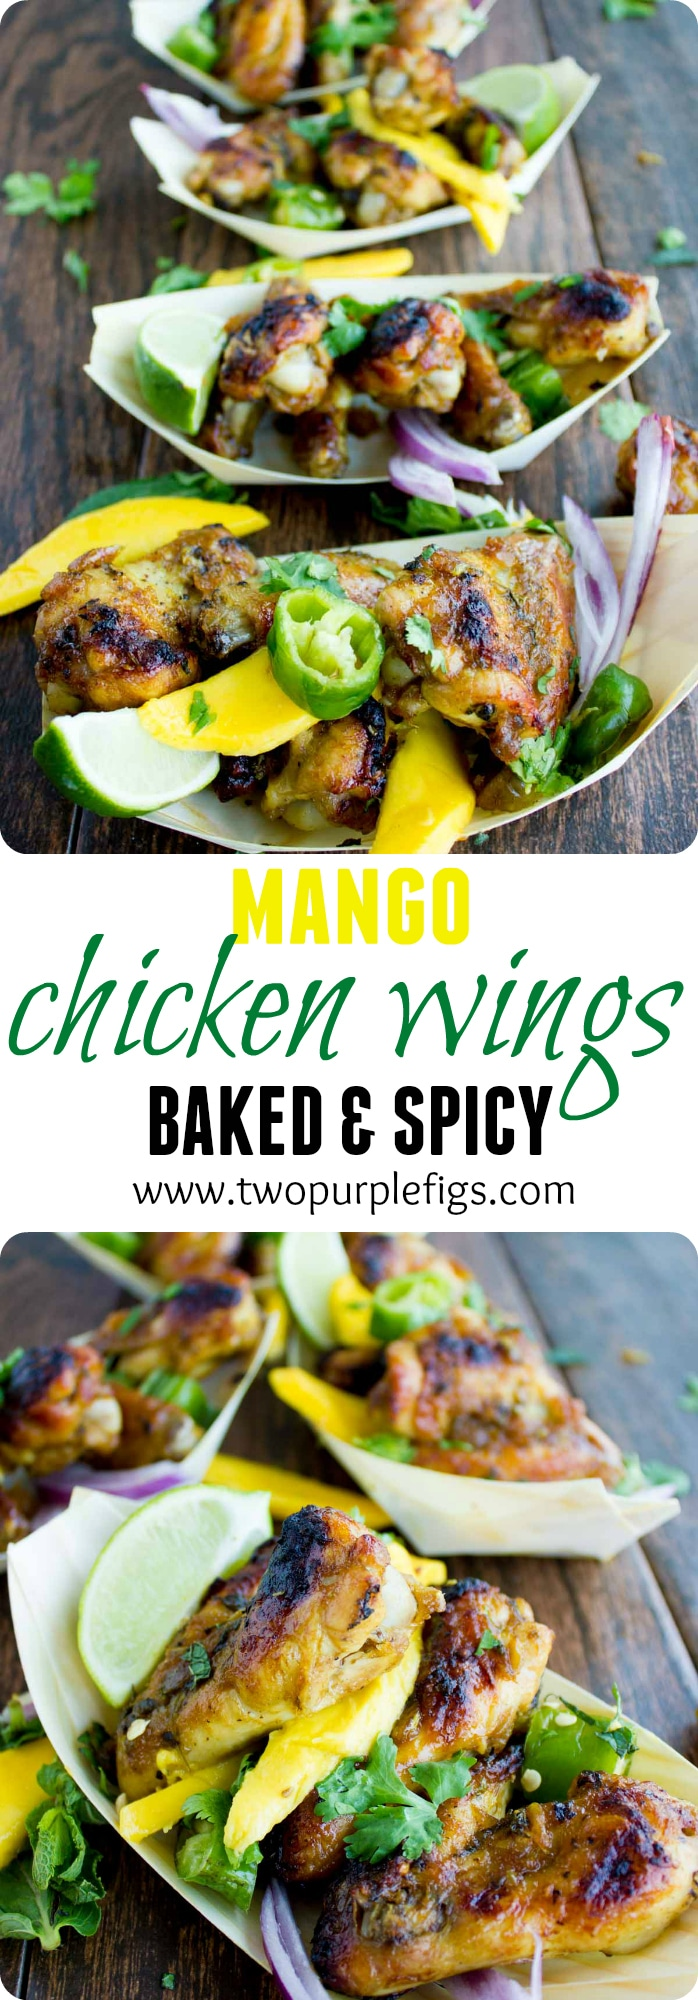 Sweet & Spicy Baked Chicken Wings with Mango Chutney | These Sweet and Spicy Chicken Wings are smothered with homemade mango chutney, then baked until tender and crispy with a perfectly caramelized skin! Try this exotic andhealthytwist on traditional fried chicken!#chicken, #dinner, #easy, #baked, #healthy, #dinner, #kids, #exotic, #fingerfood, #fastfood